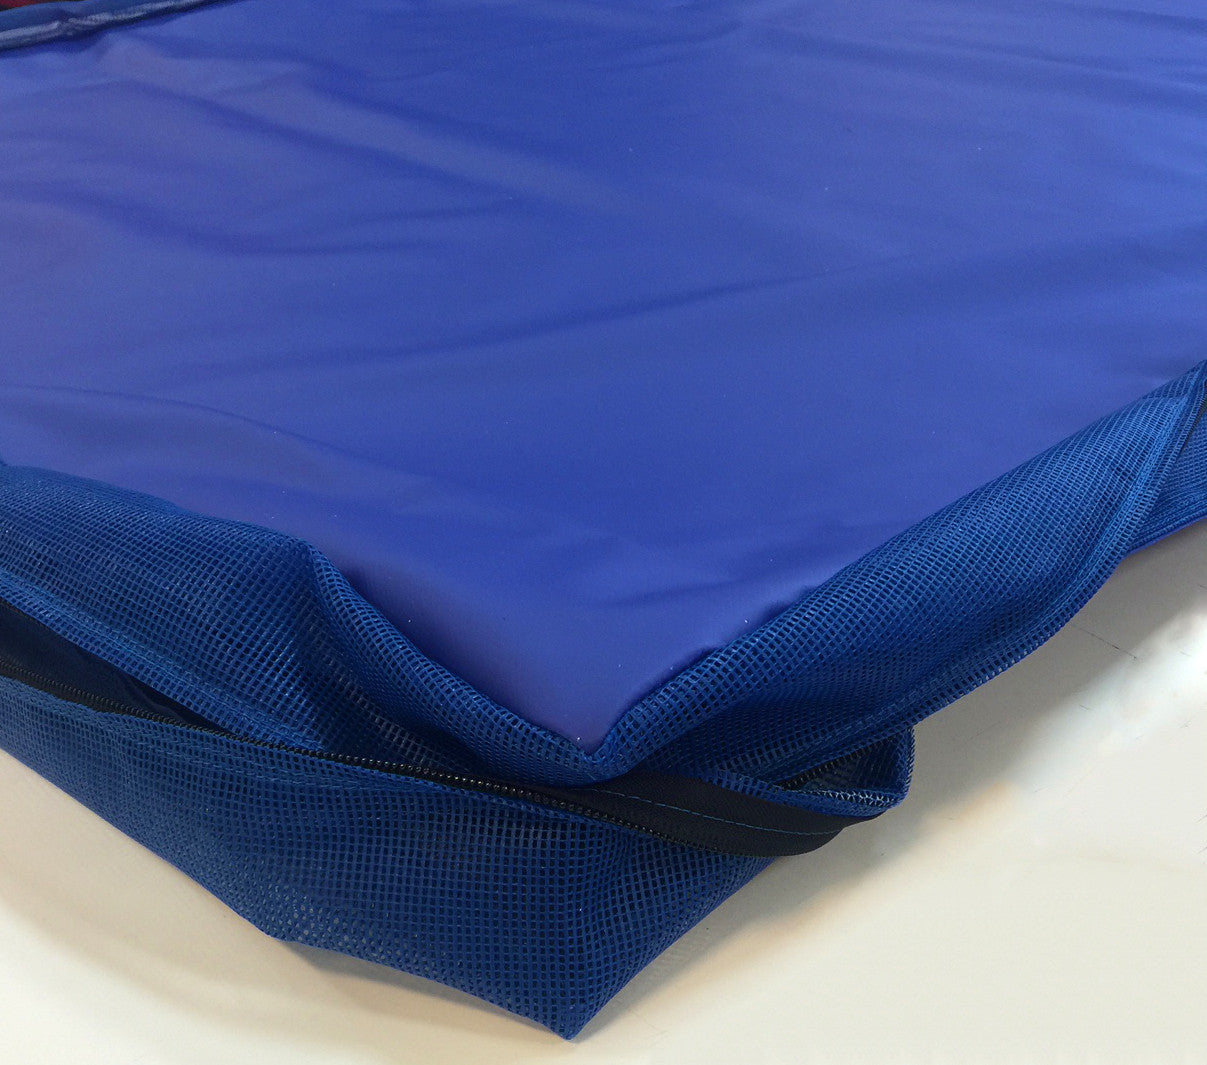 Gymnastics landing mat/crash mat replacement cover